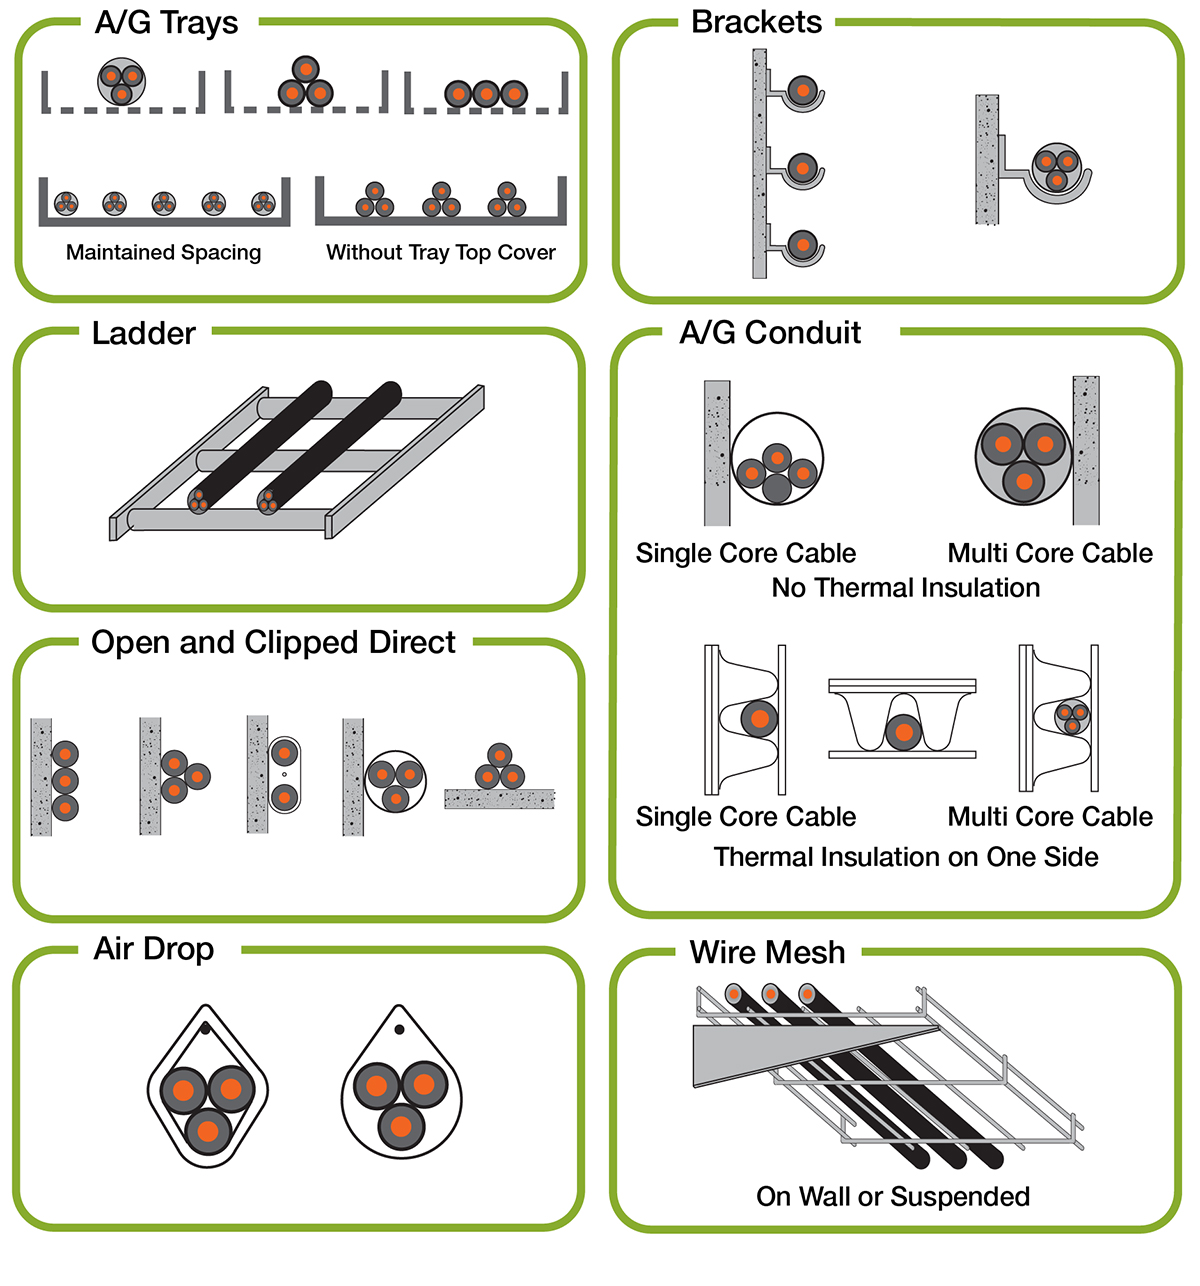 IEC 60092 Cable Raceway Installation and Layout